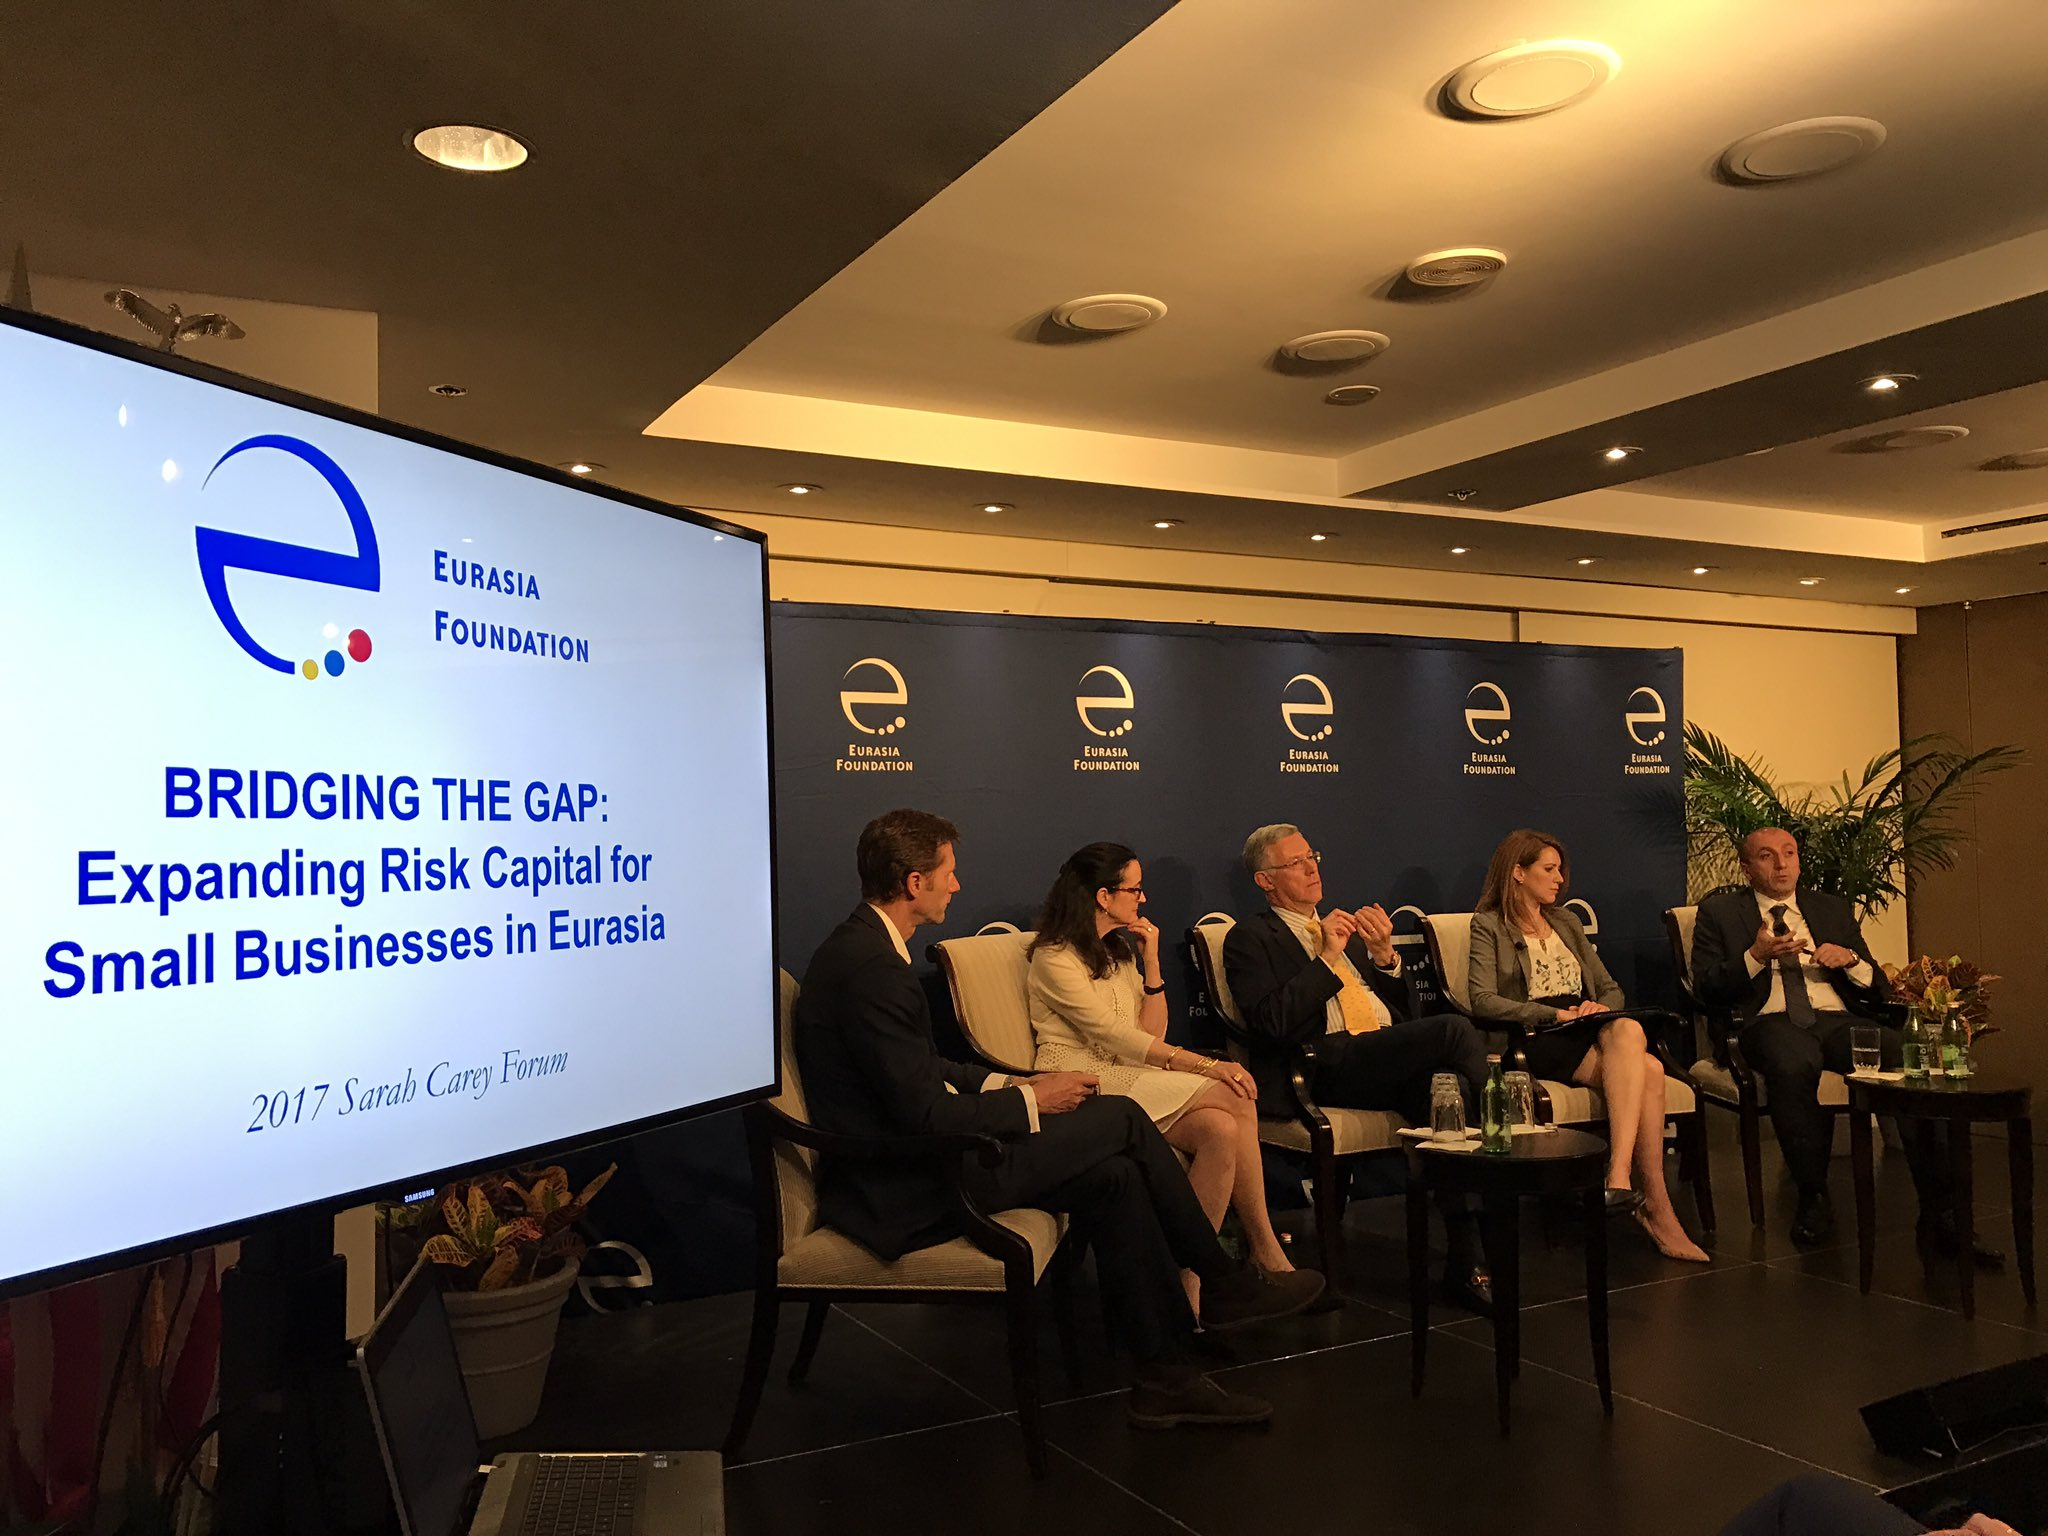 @EFNetwork DCM talking on business environment and investment incentives in Georgia https://t.co/B1IS0kJx5O